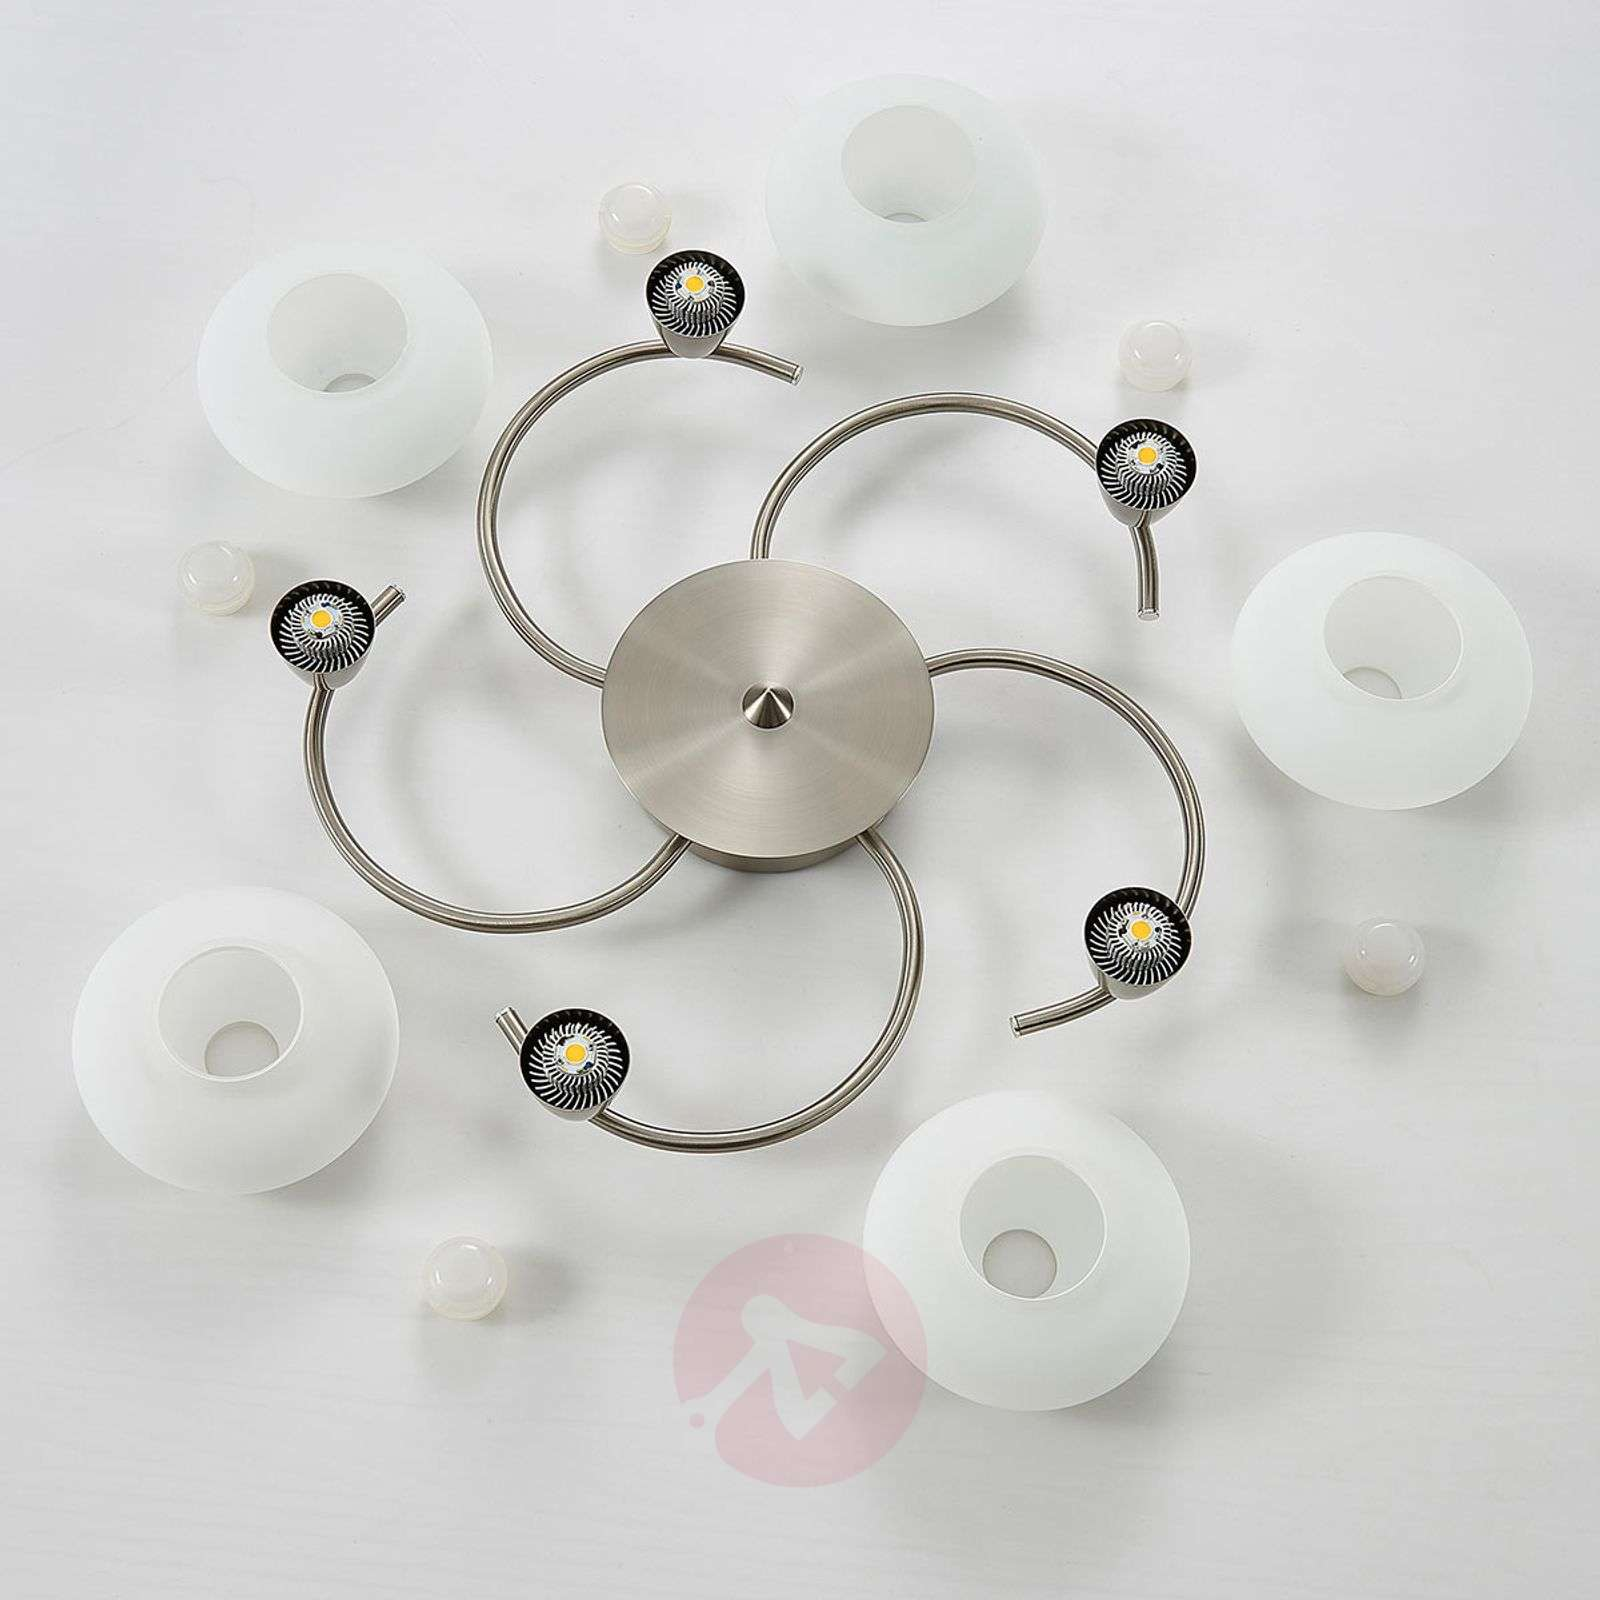 LED ceiling light Espen, matt nickel finish-9620549-030